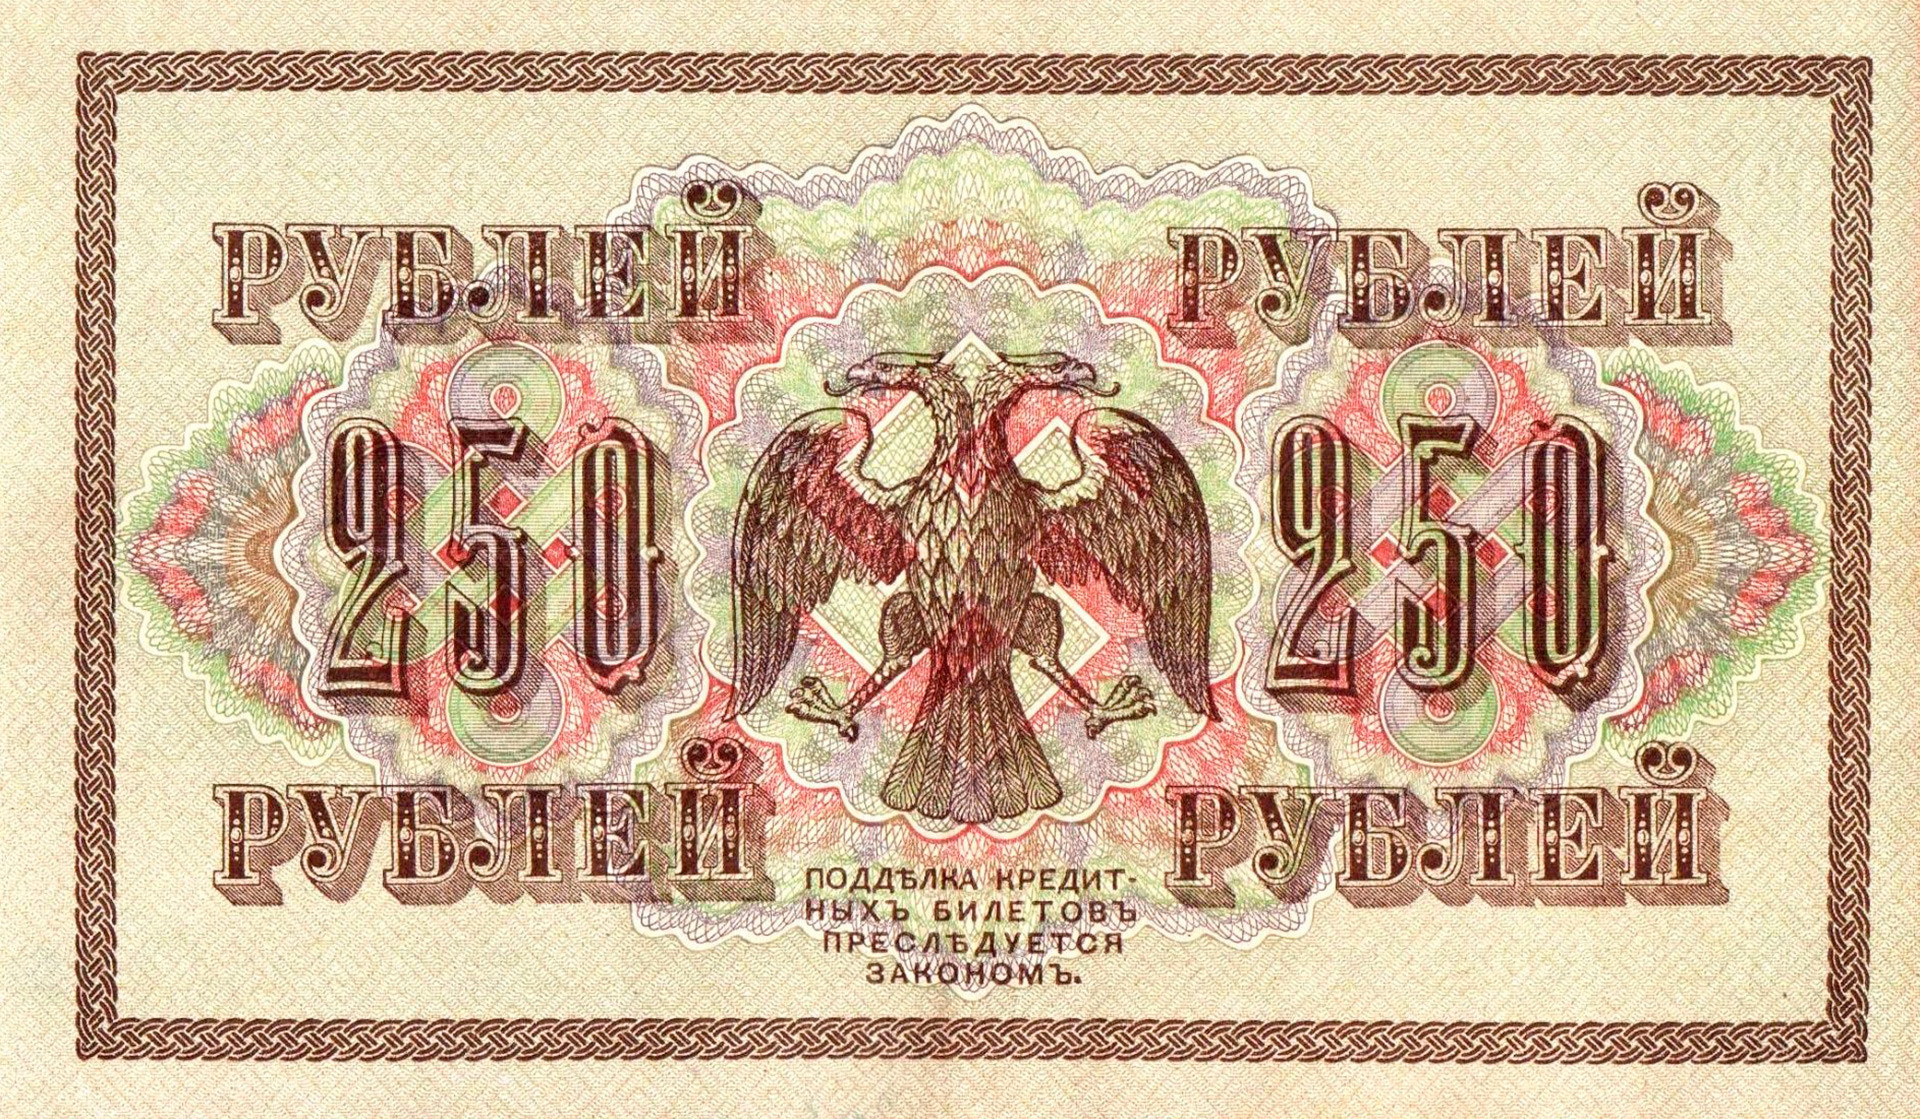 A 250-ruble banknote with swastika on the background